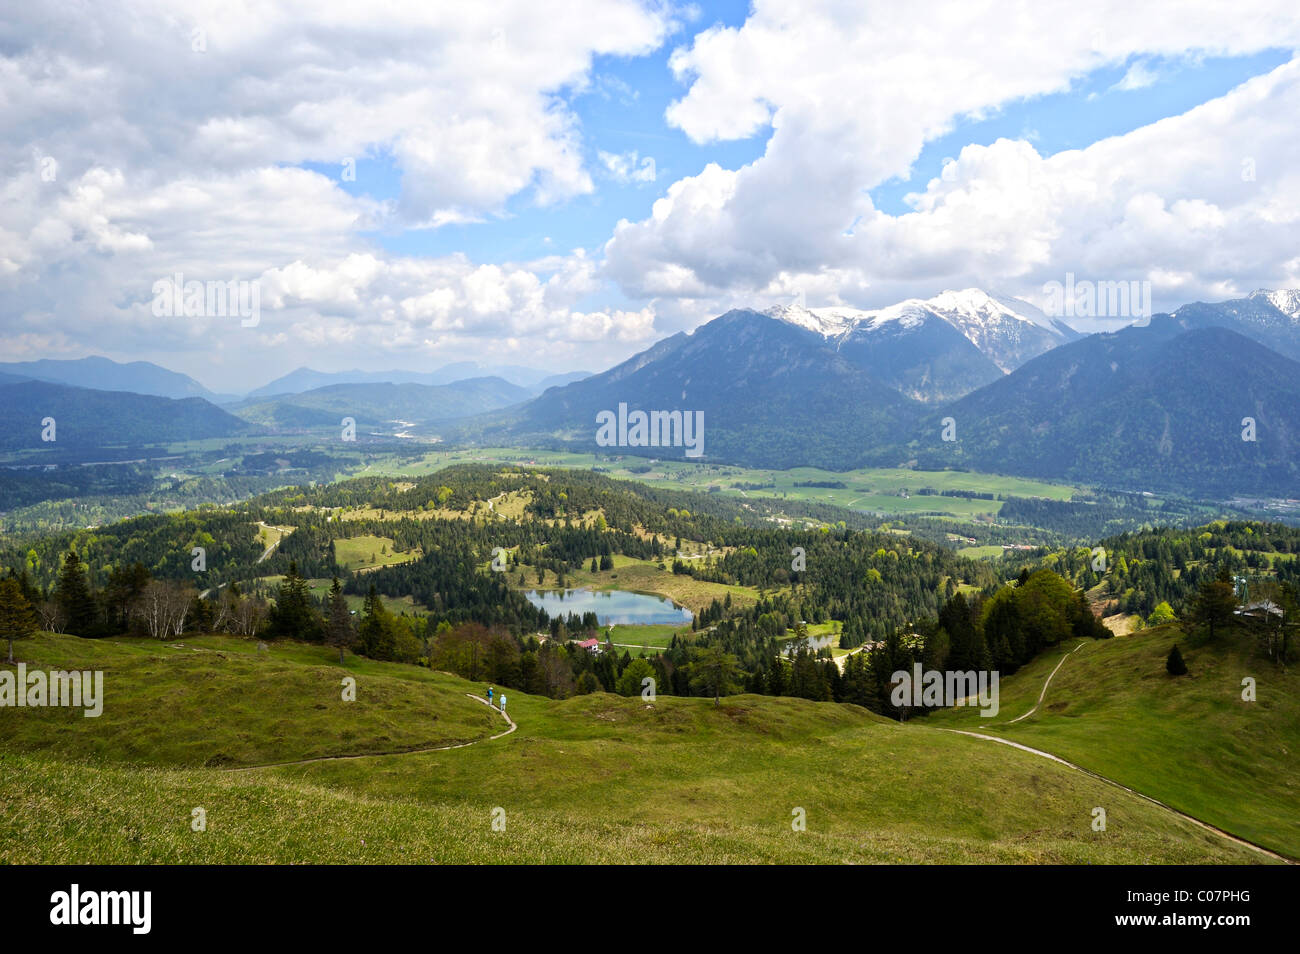 View from Kranzberg mountain onto Wildensee lake, Estergebirge mountain range with Heimgarten and Herzogstand mountains - Stock Image